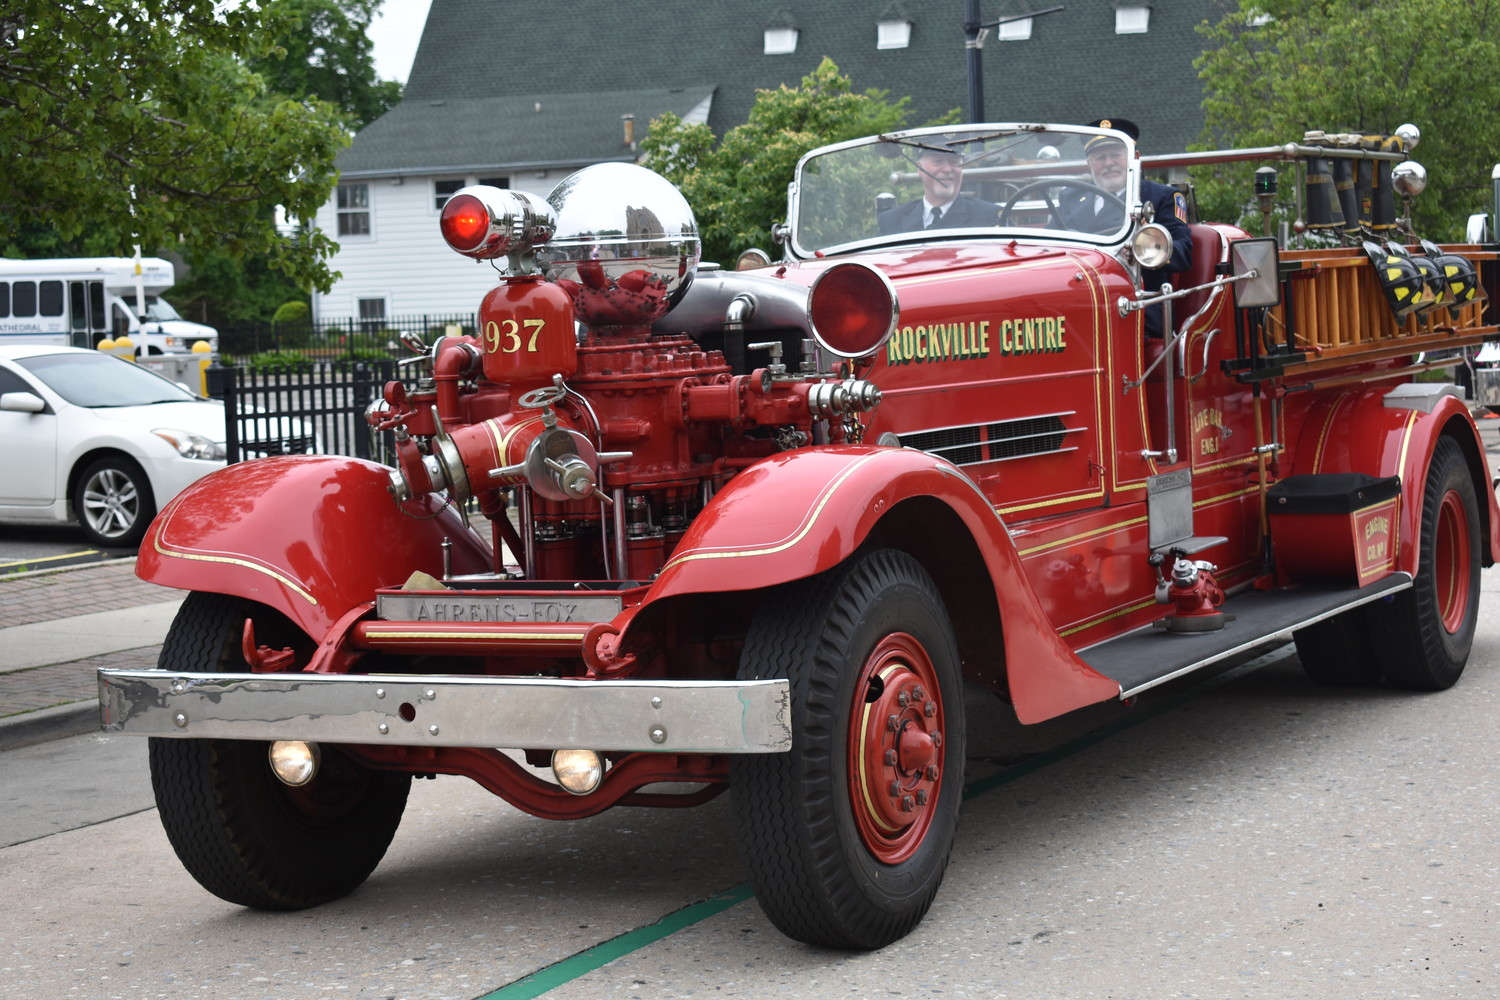 An old firetruck dazzled spectators.